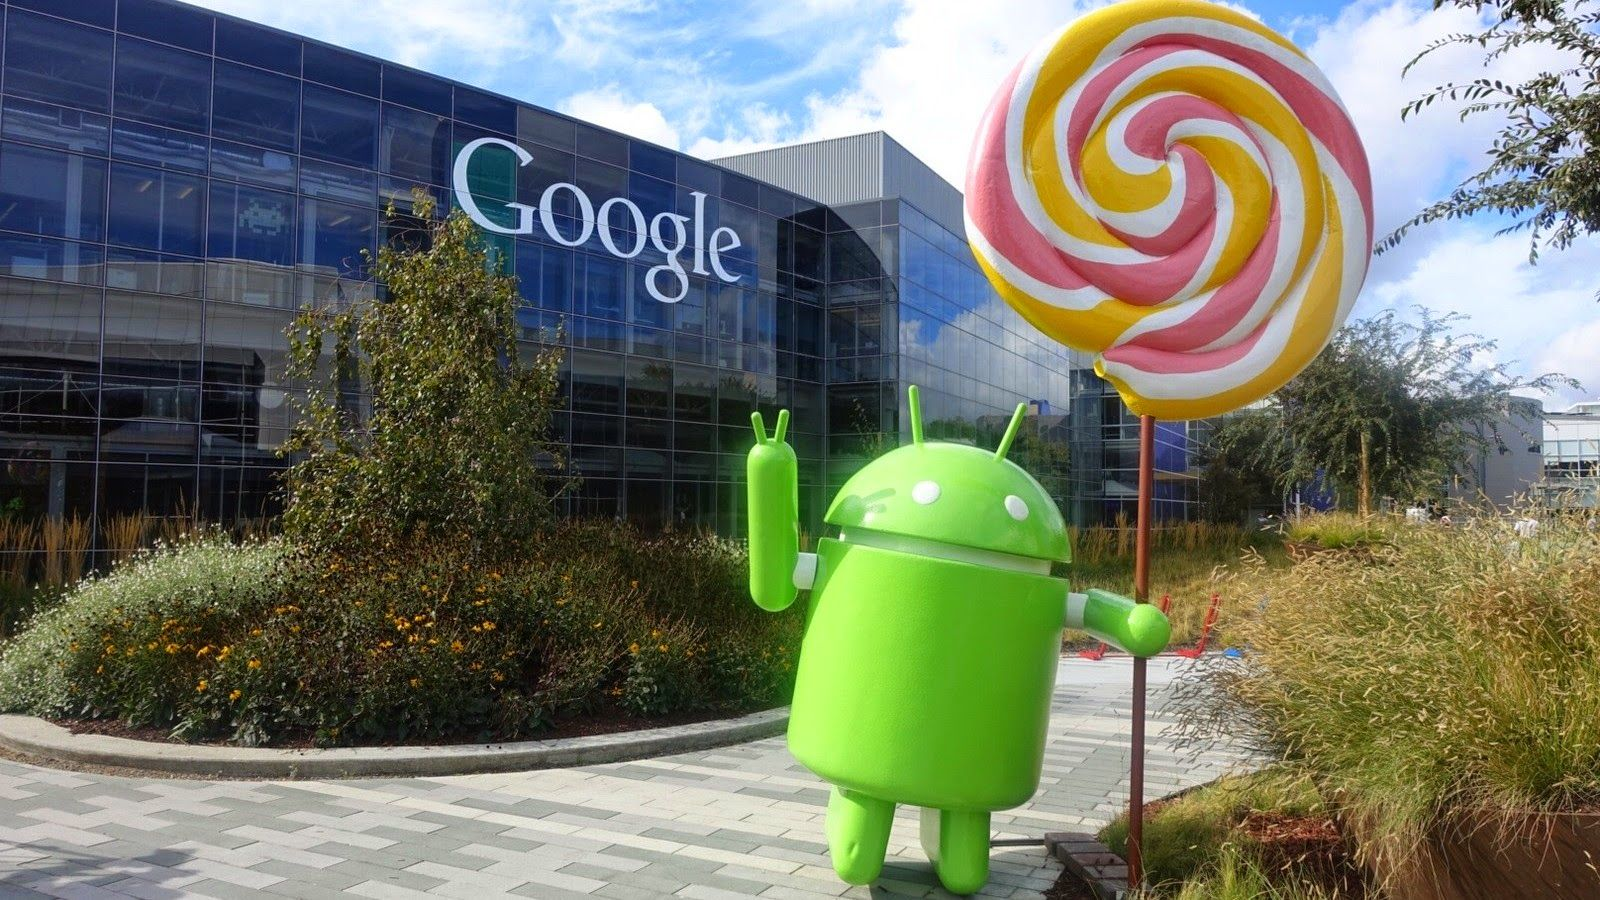 #Android 5.1 enfin officialisé ! | Jean-Marie Gall.com #google